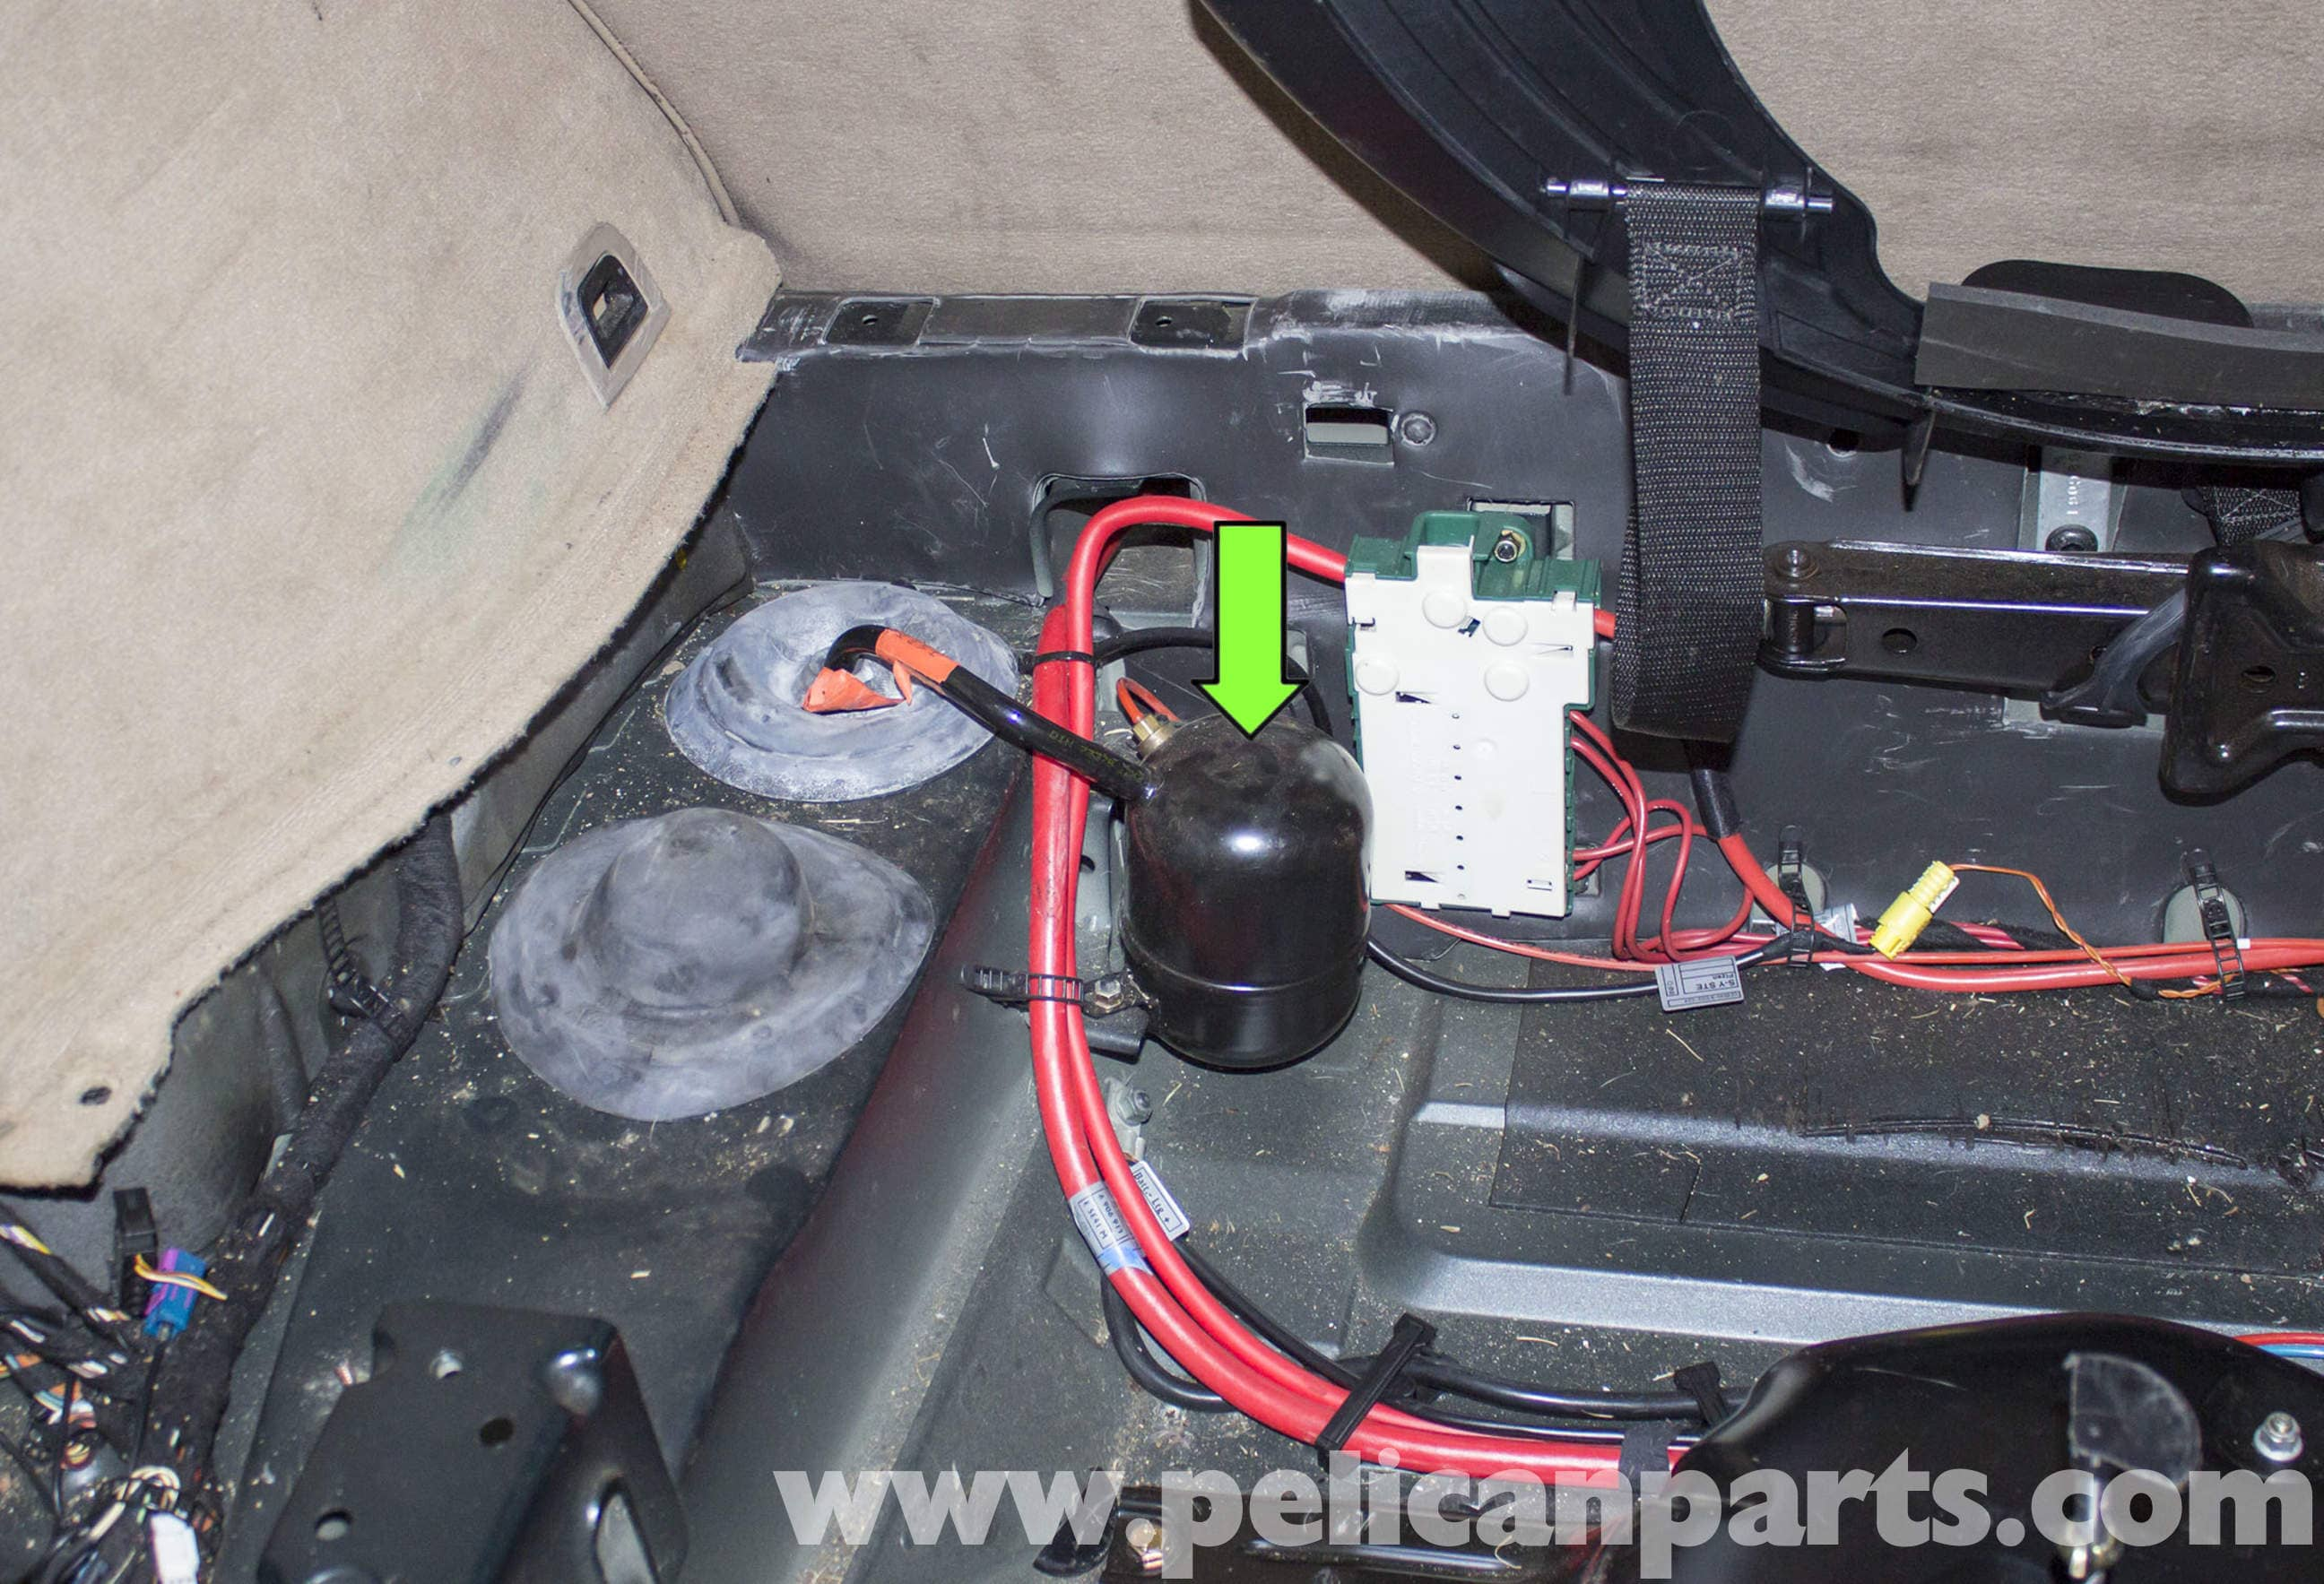 bmw x5 e70 tail light wiring diagram loan company er rear air suspension accumulator replacement e53 2000 2006 large image extra